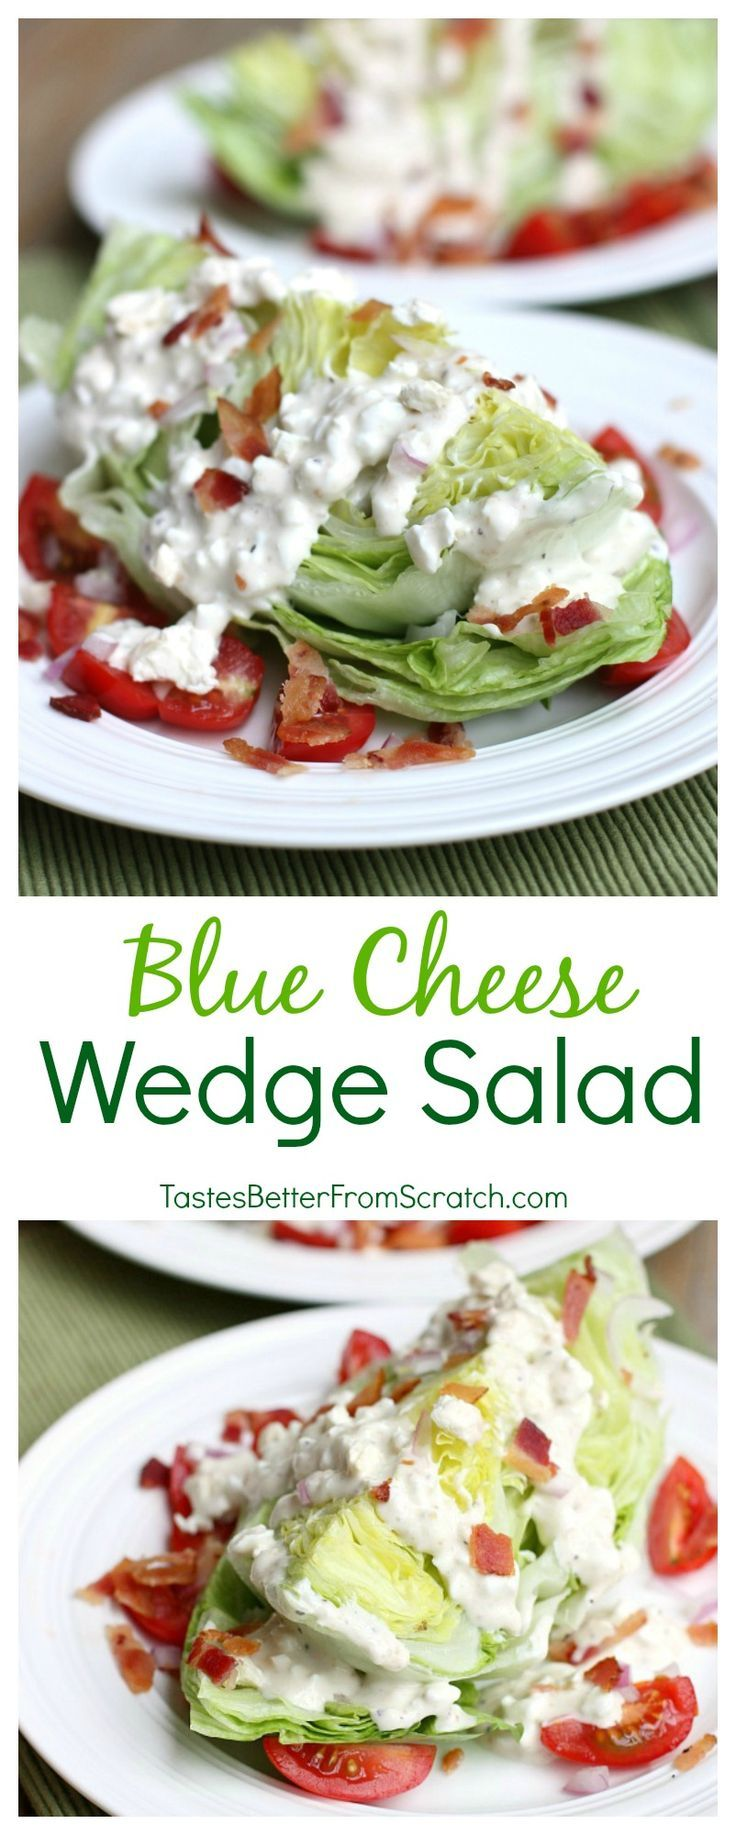 Blue Dor Blue Cheese: Benefits and Recipes 78